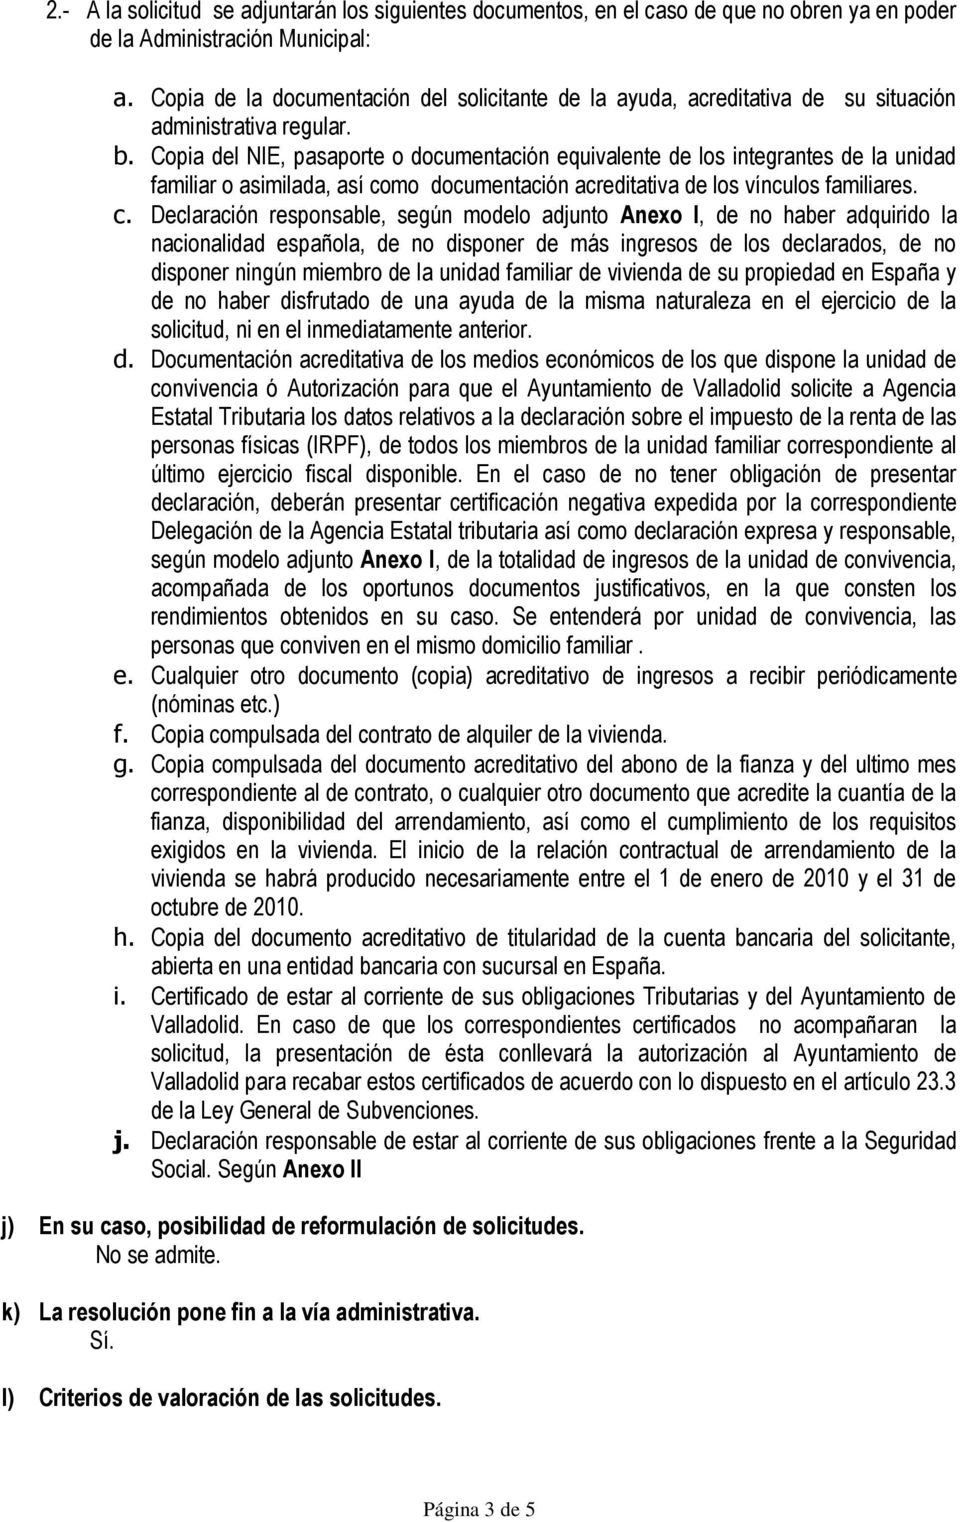 Copia del NIE, pasaporte o documentación equivalente de los integrantes de la unidad familiar o asimilada, así co